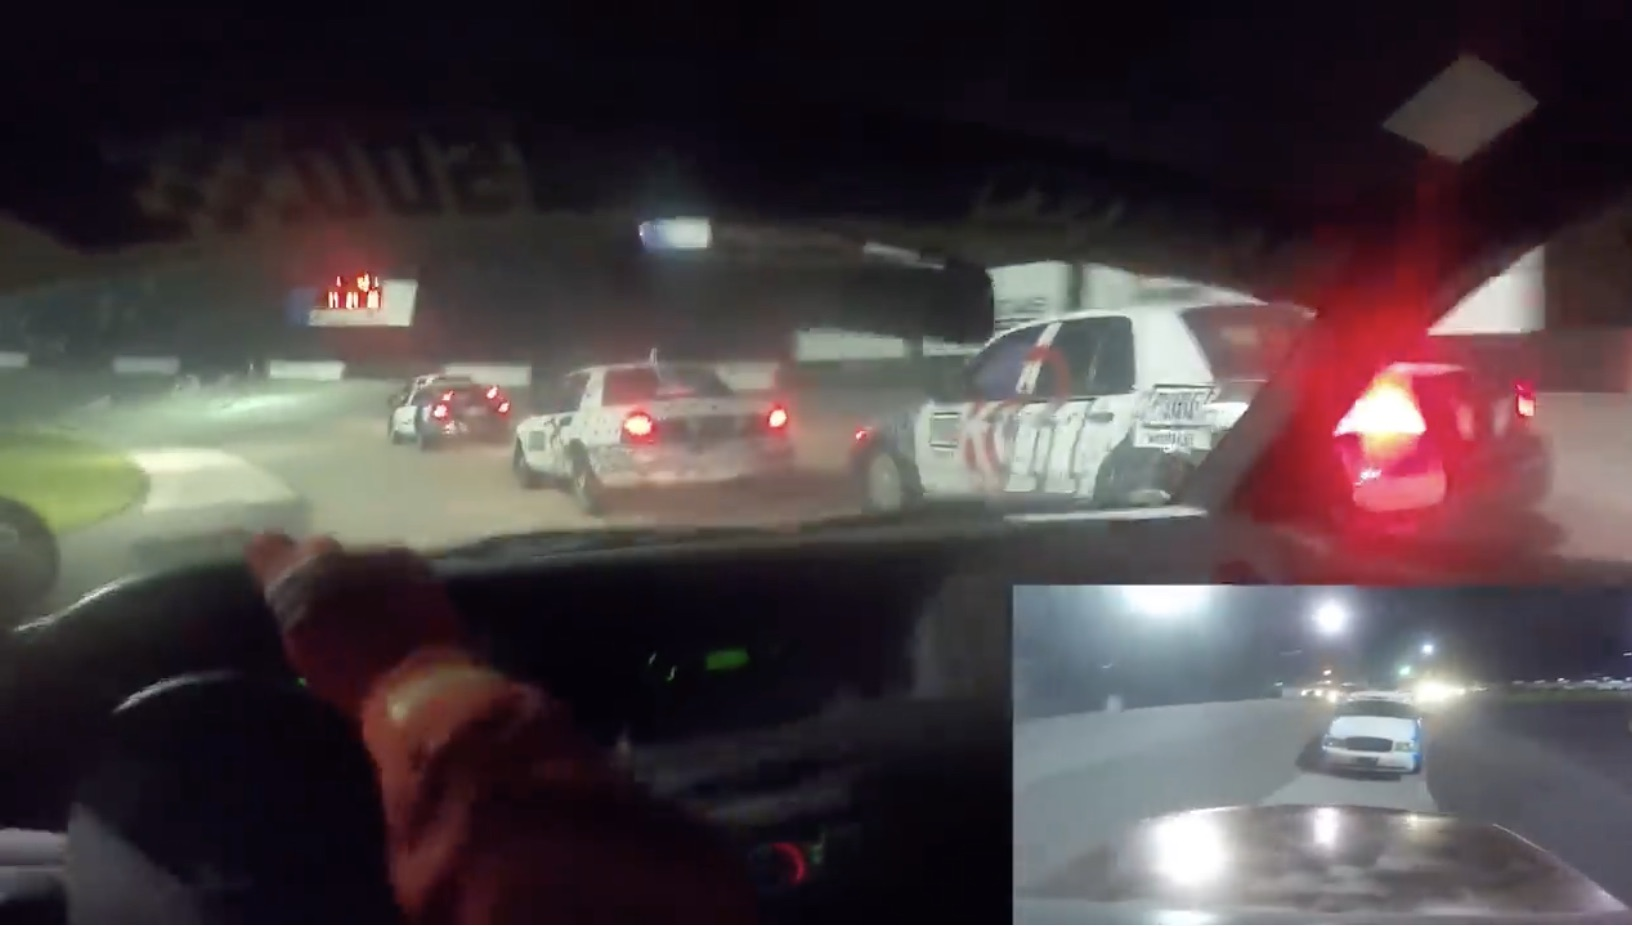 Stock Cars Racing: A Driver's Eye View Of The Freedom 500 Invitational Race!